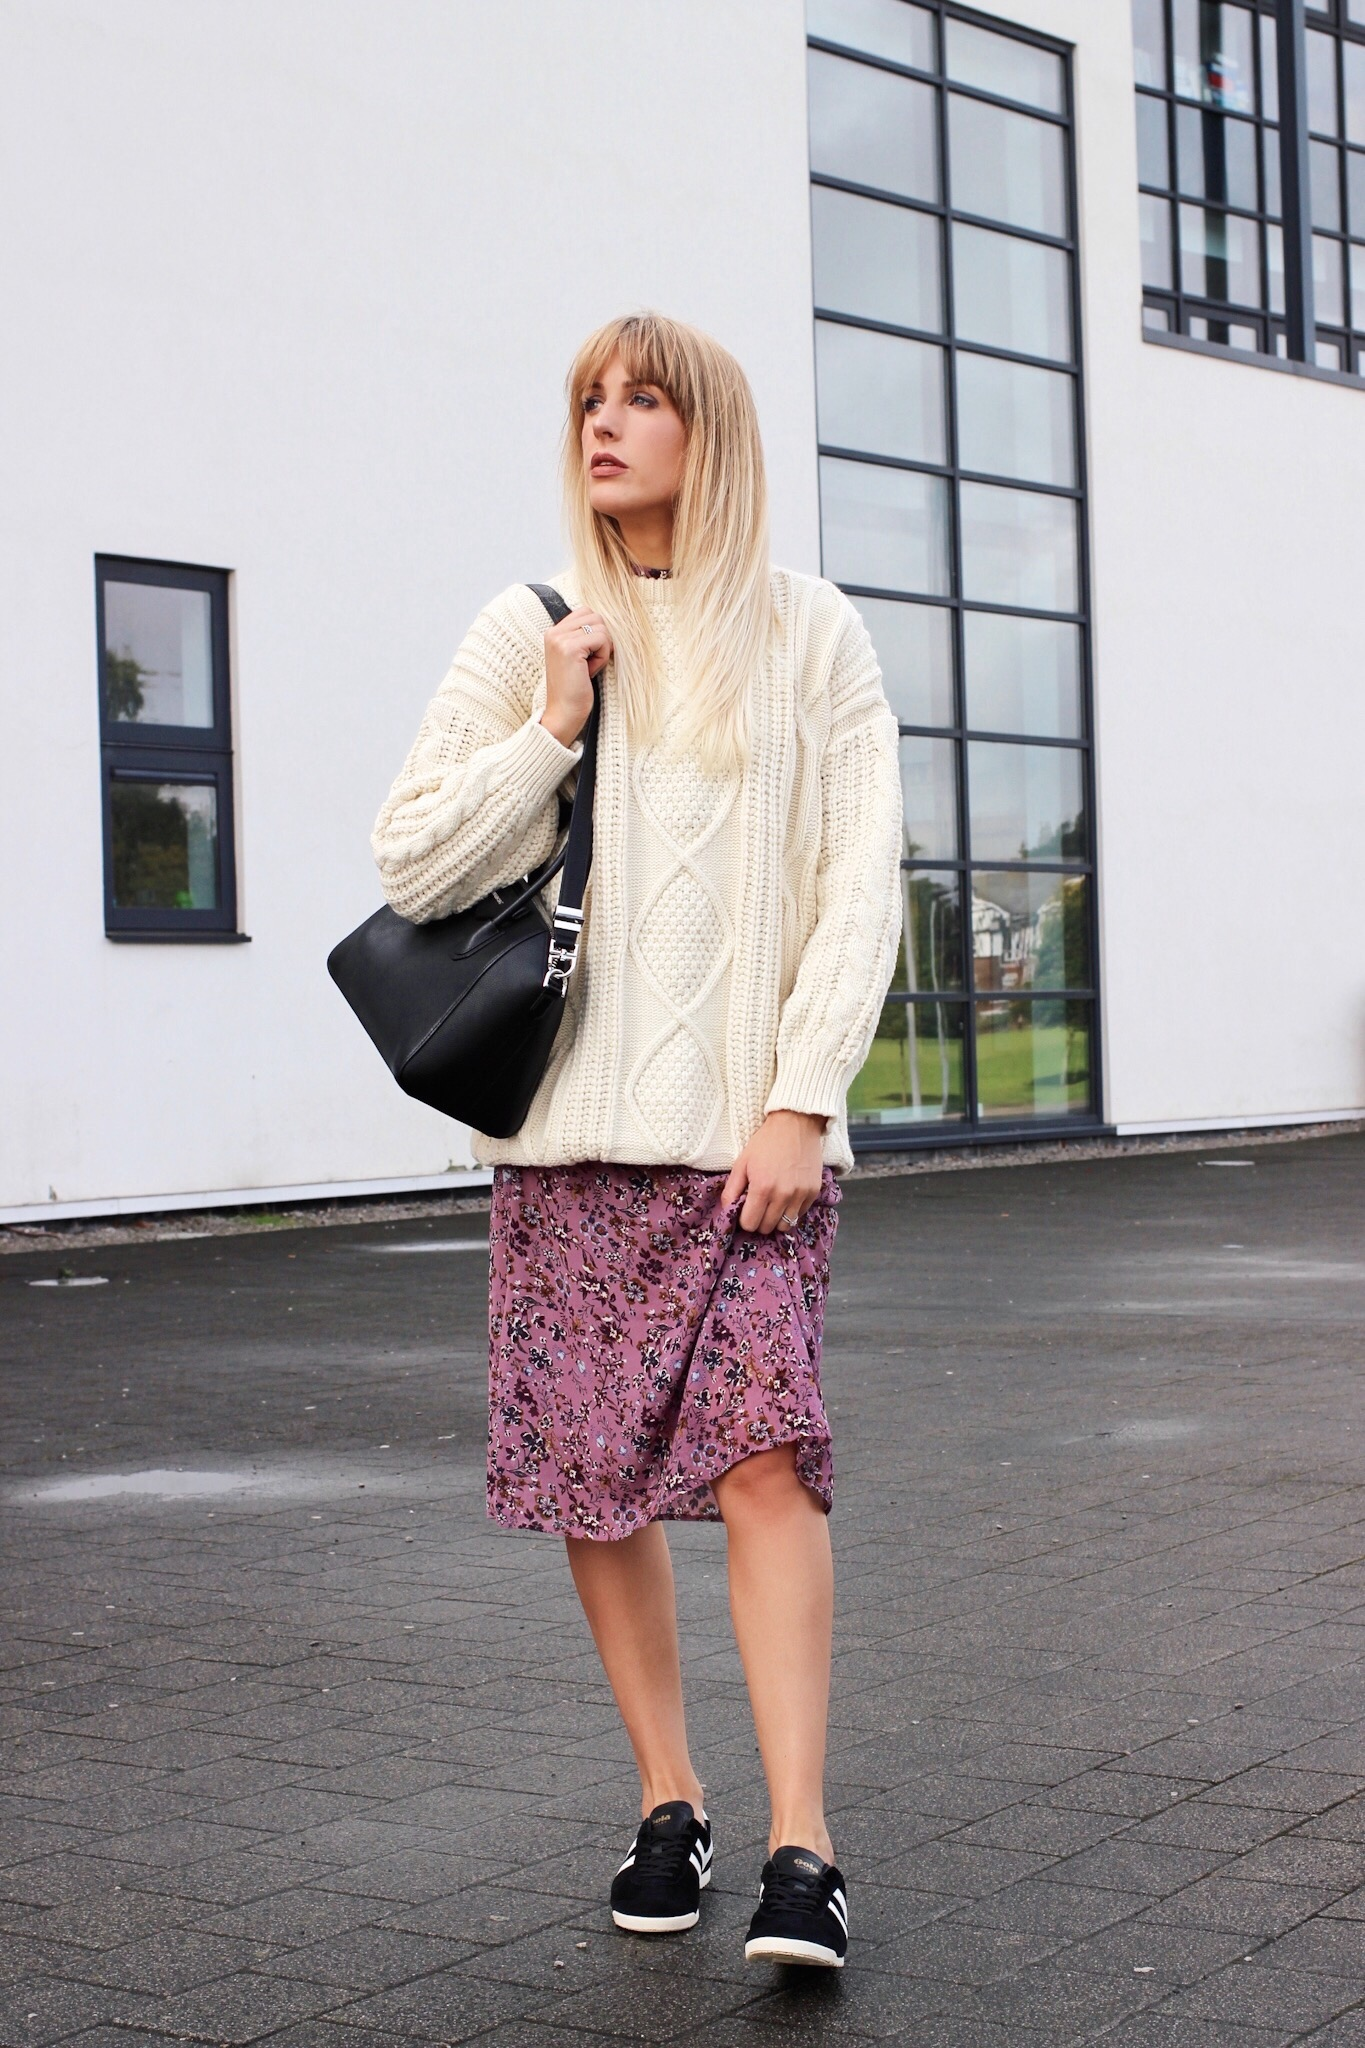 Charlotte Buttrick 30 year old fashion blogger Manchester